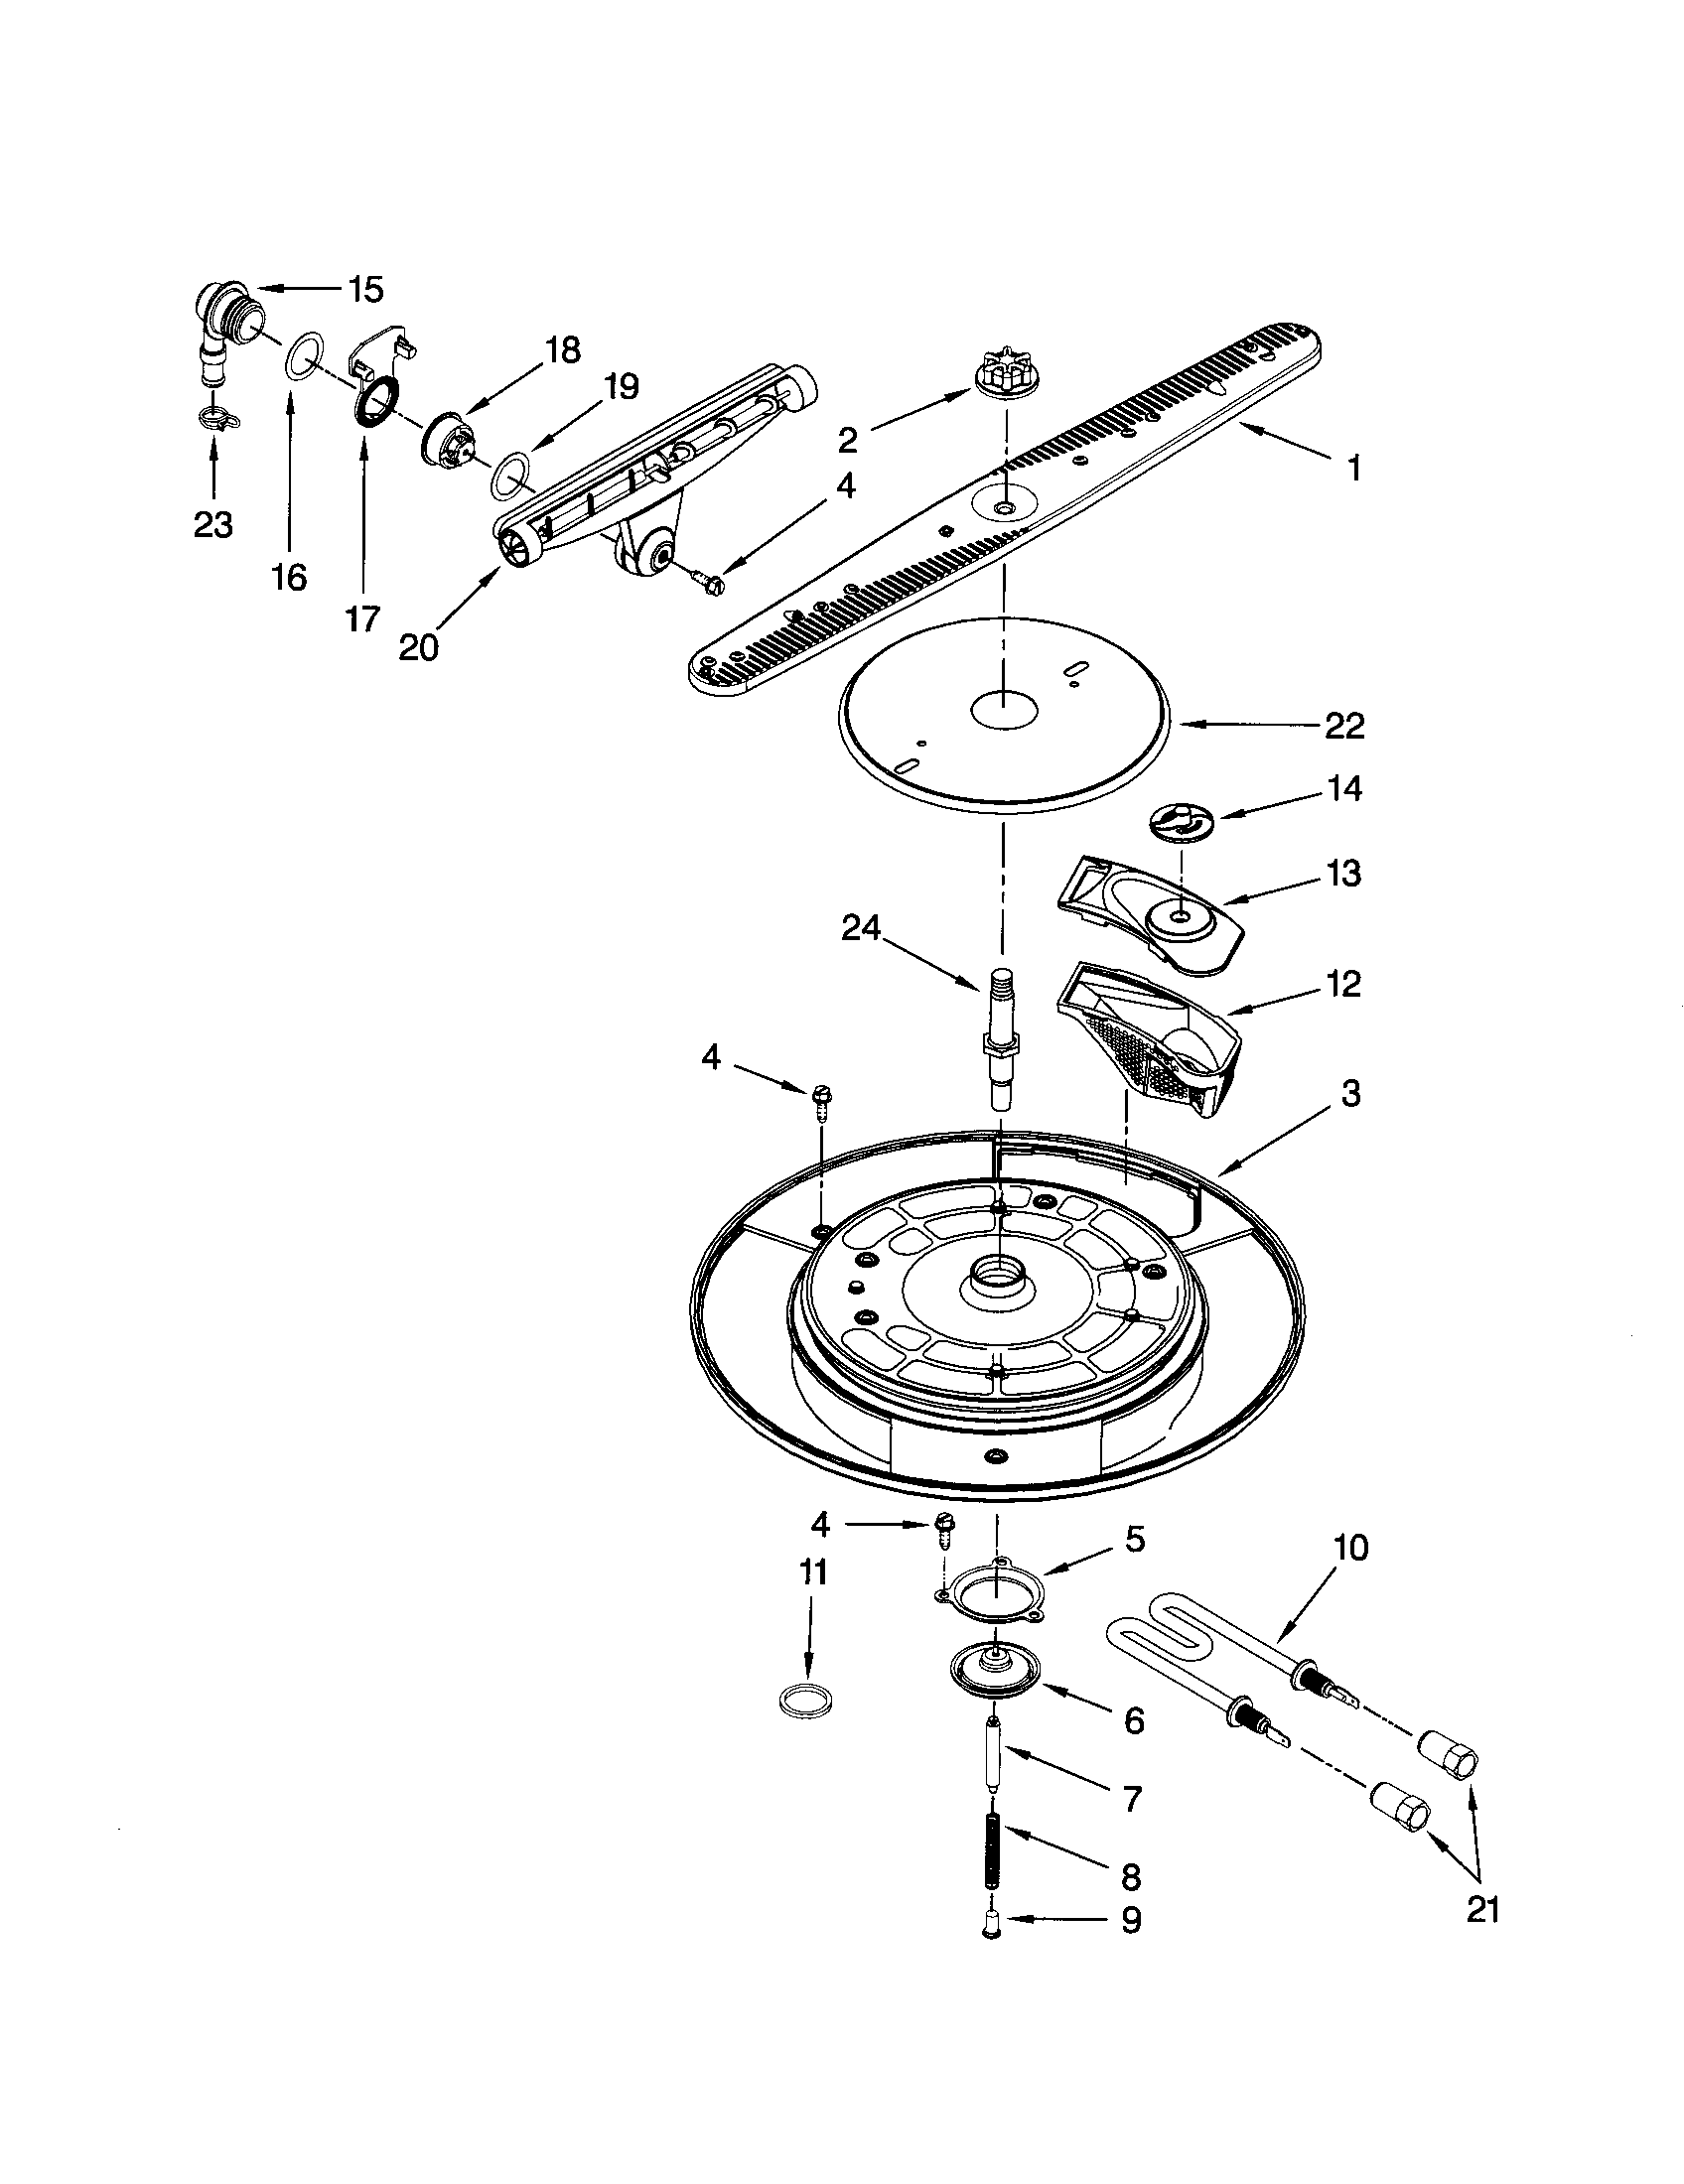 WASH SYSTEM Diagram & Parts List for Model 46513339600